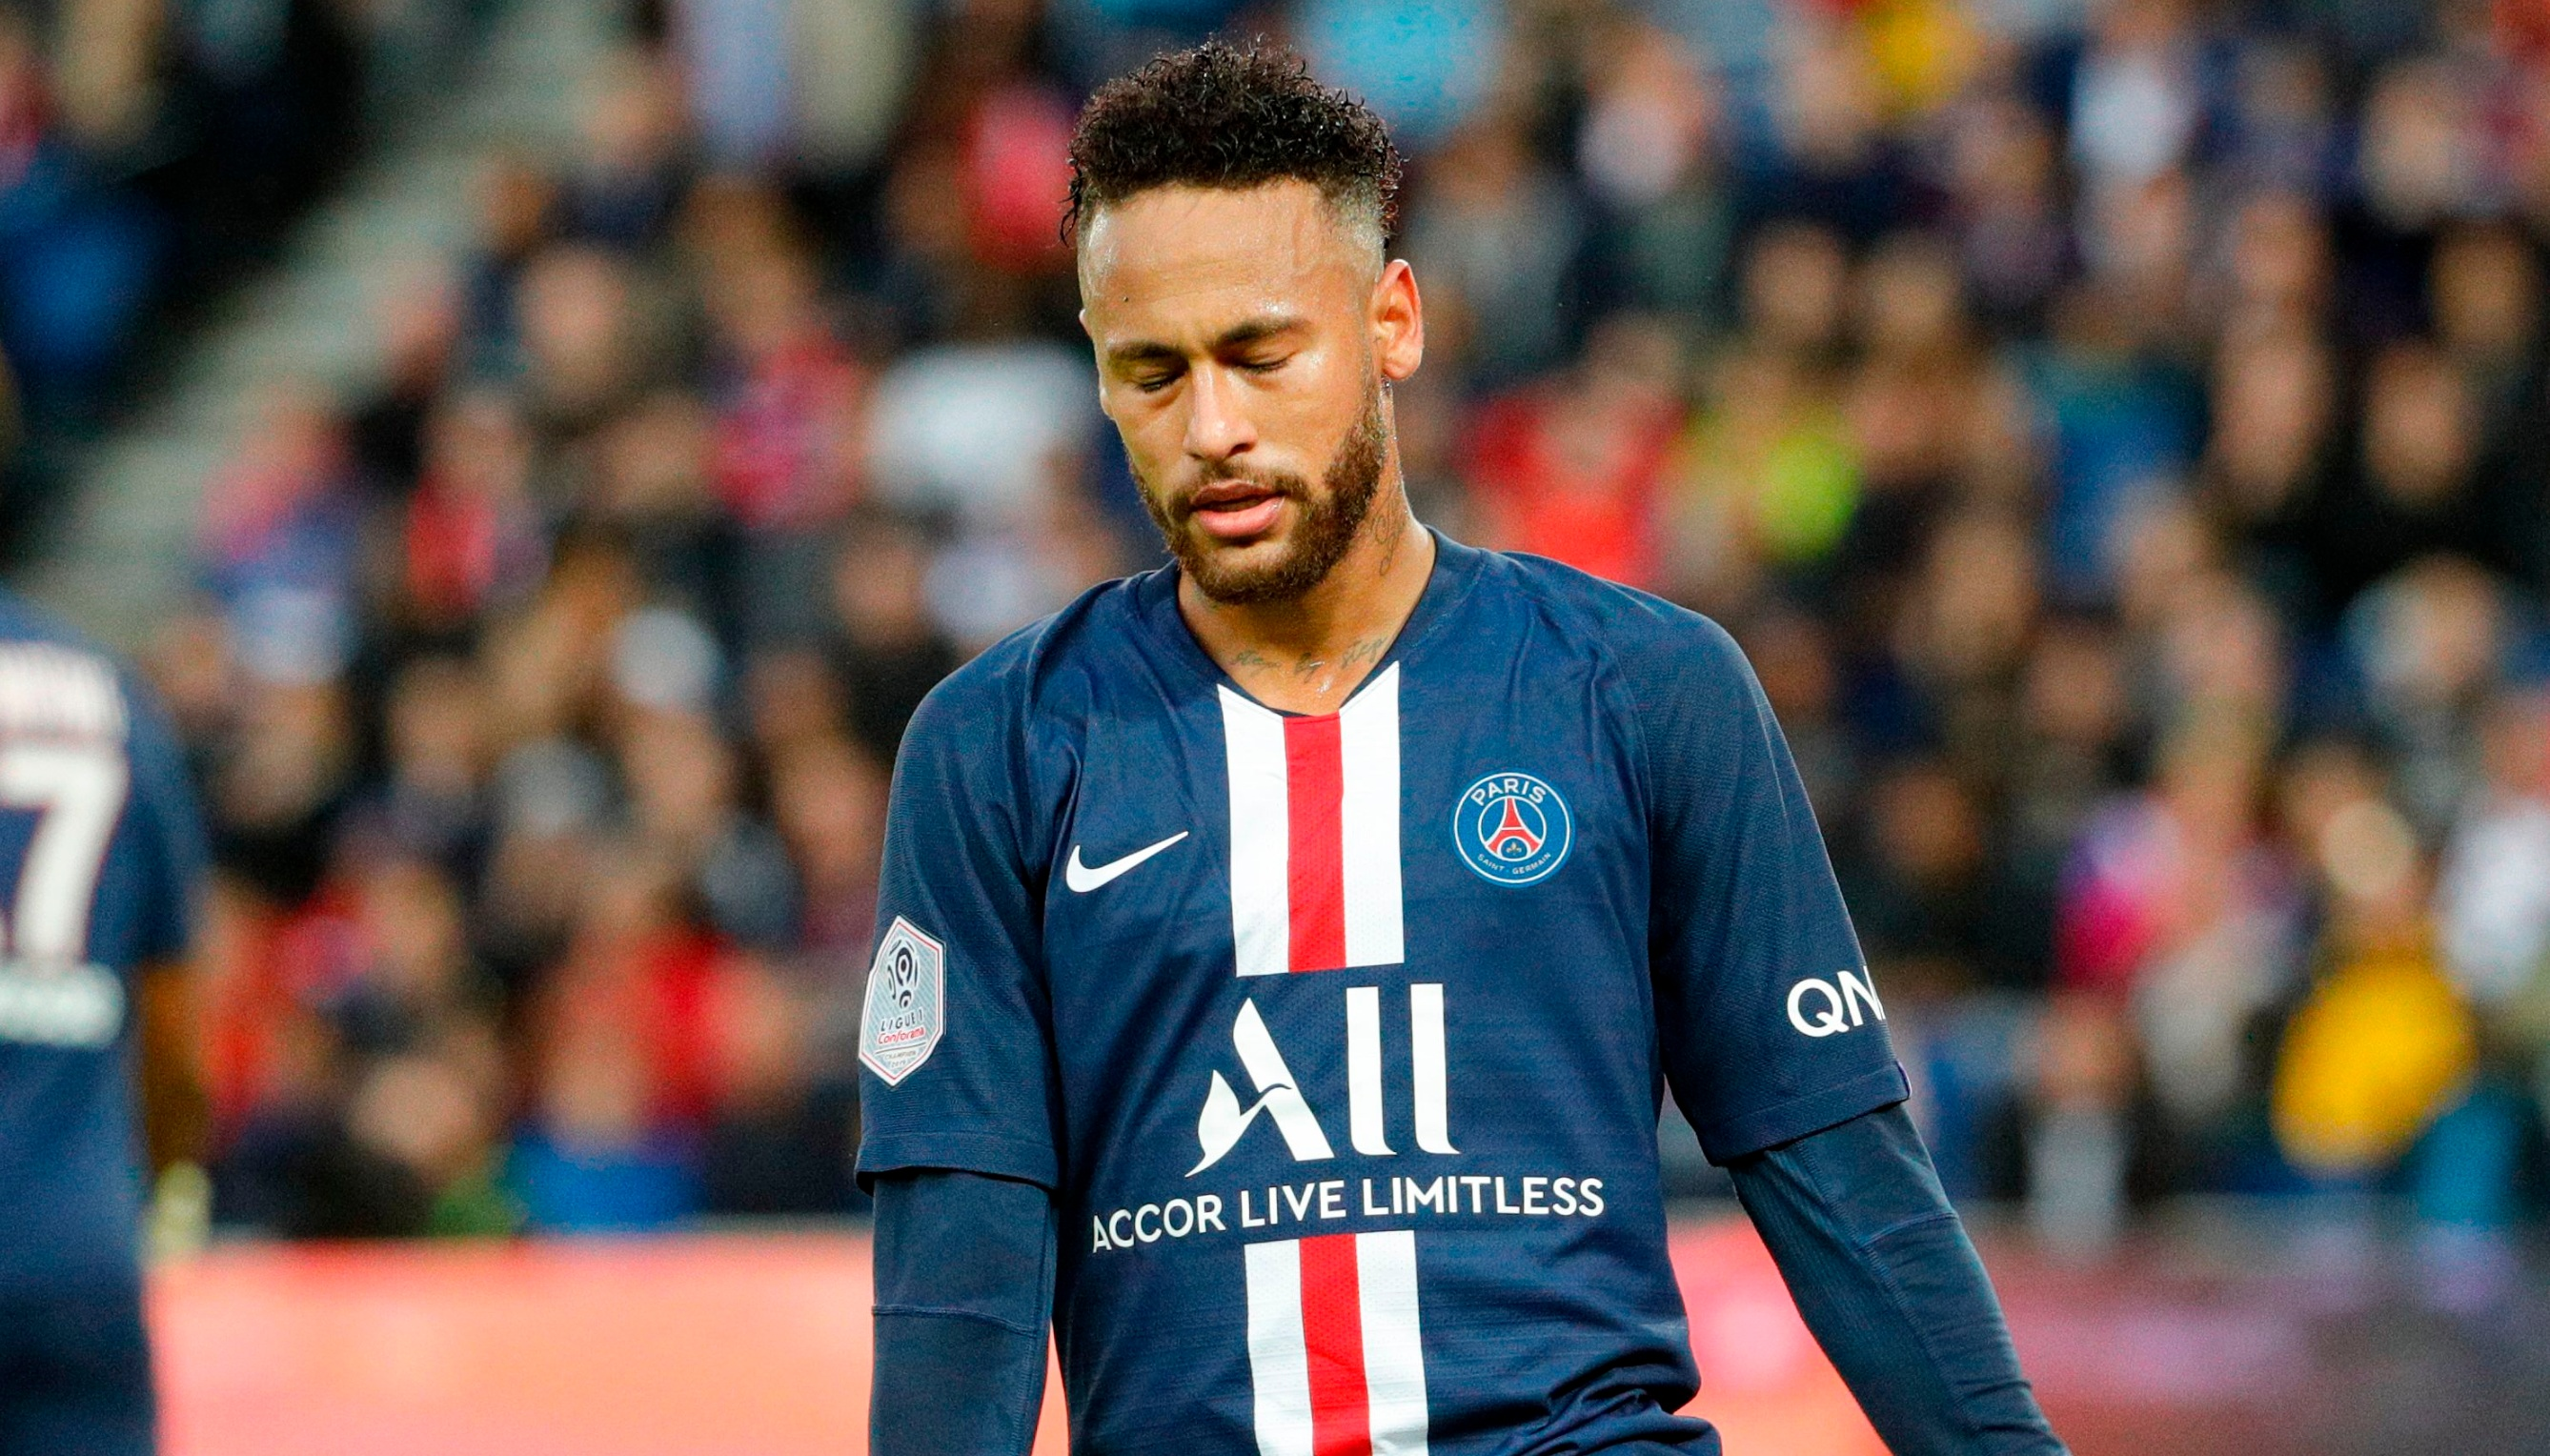 Neymar on his relationship with PSG fans: The love will return